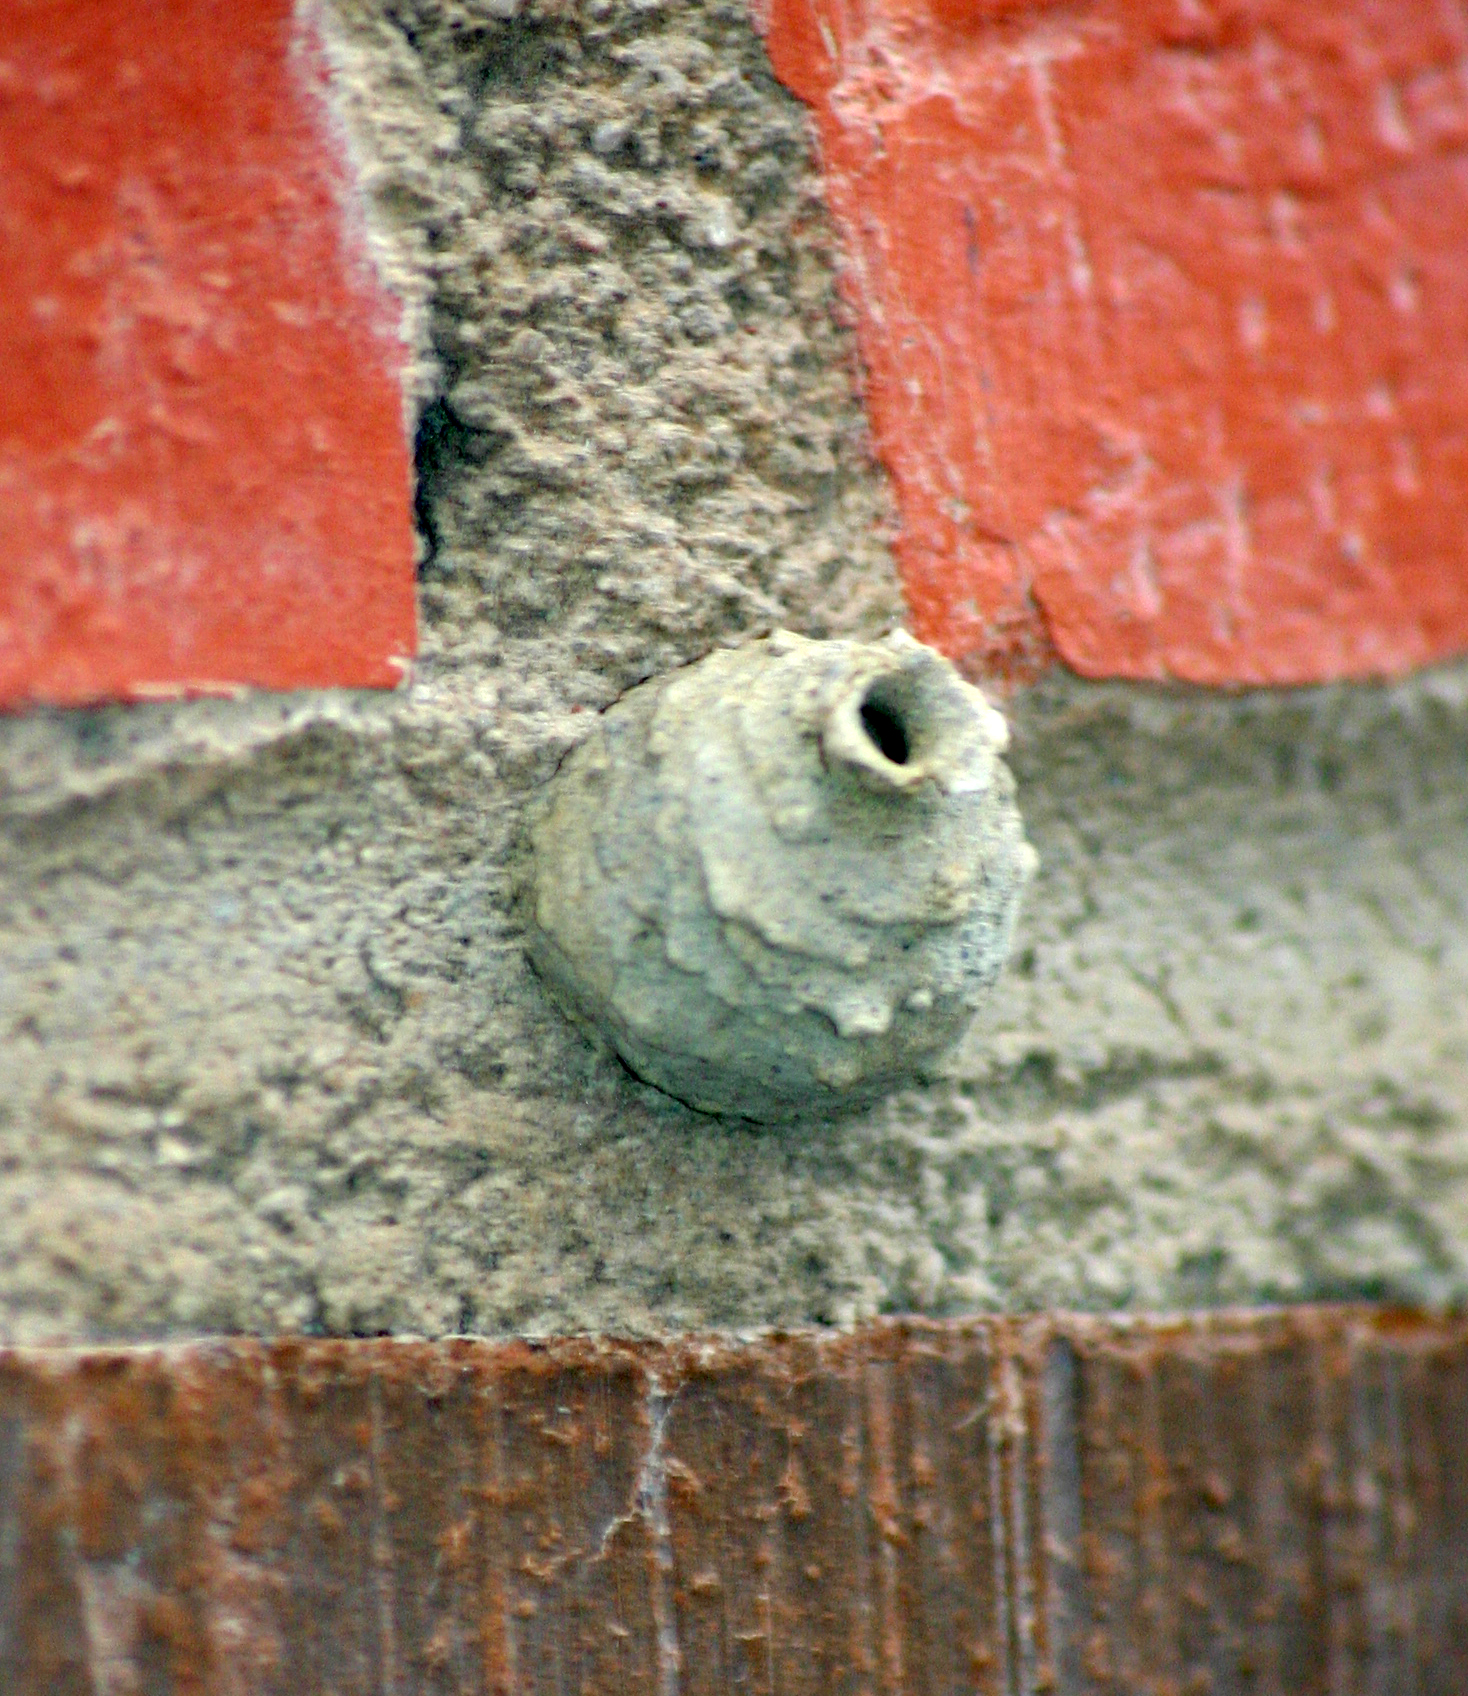 File:Potter wasp nest 6734.jpg - Wikipedia